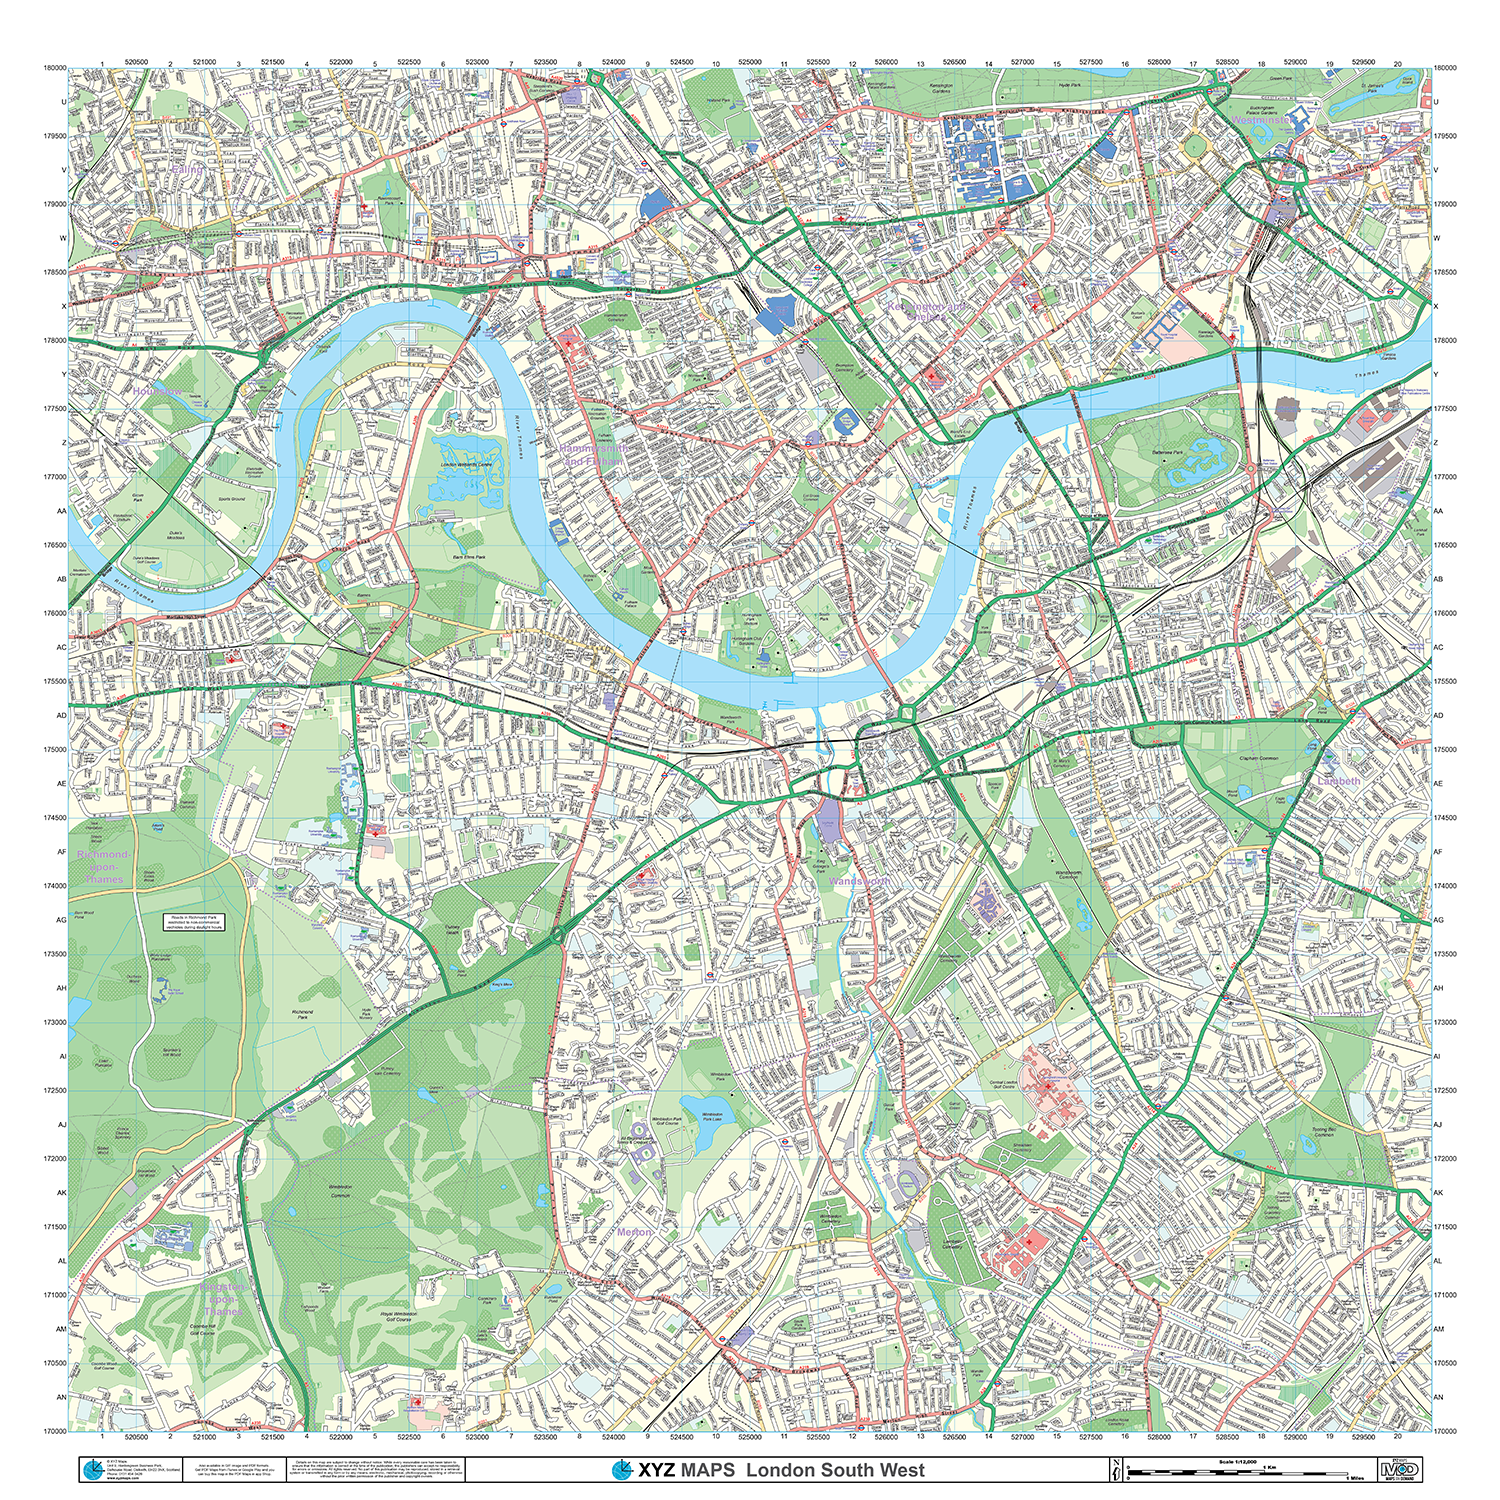 london xyz citymap london south west detail 1